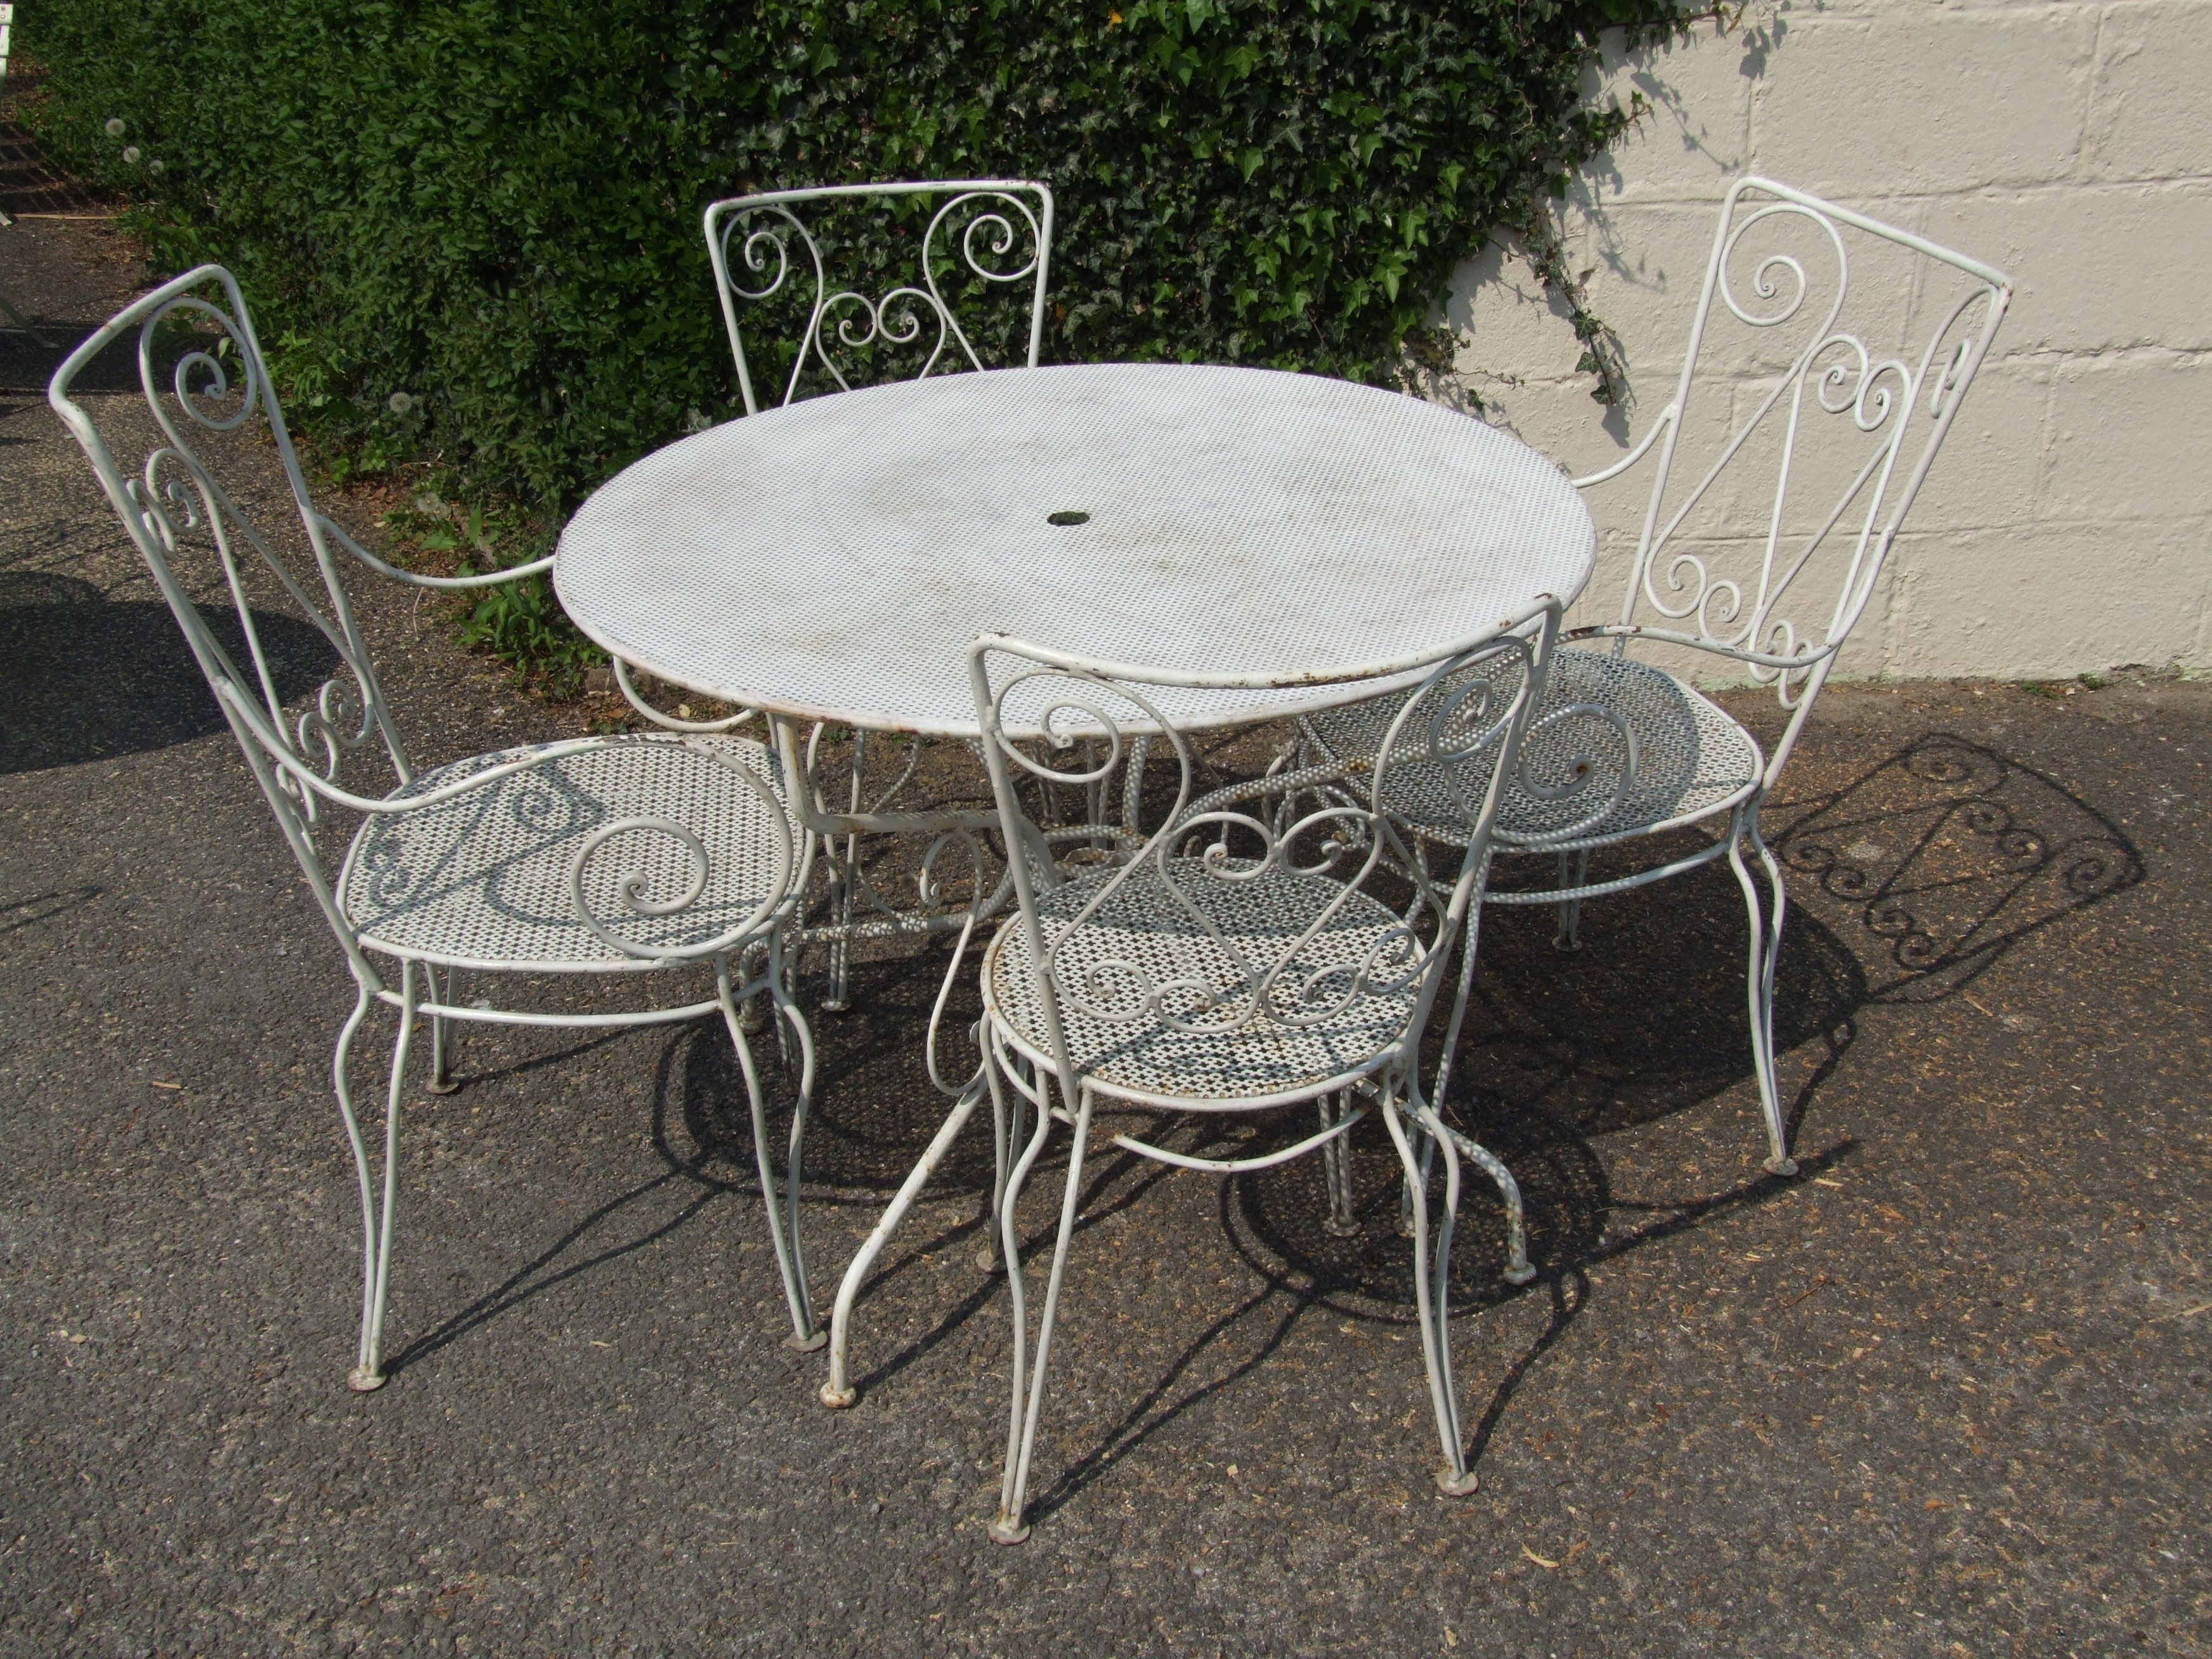 chairs wrought furniture chair size as table carving side room patio vintage metal and of white full sets wood kitchen outdoor dining quality iron